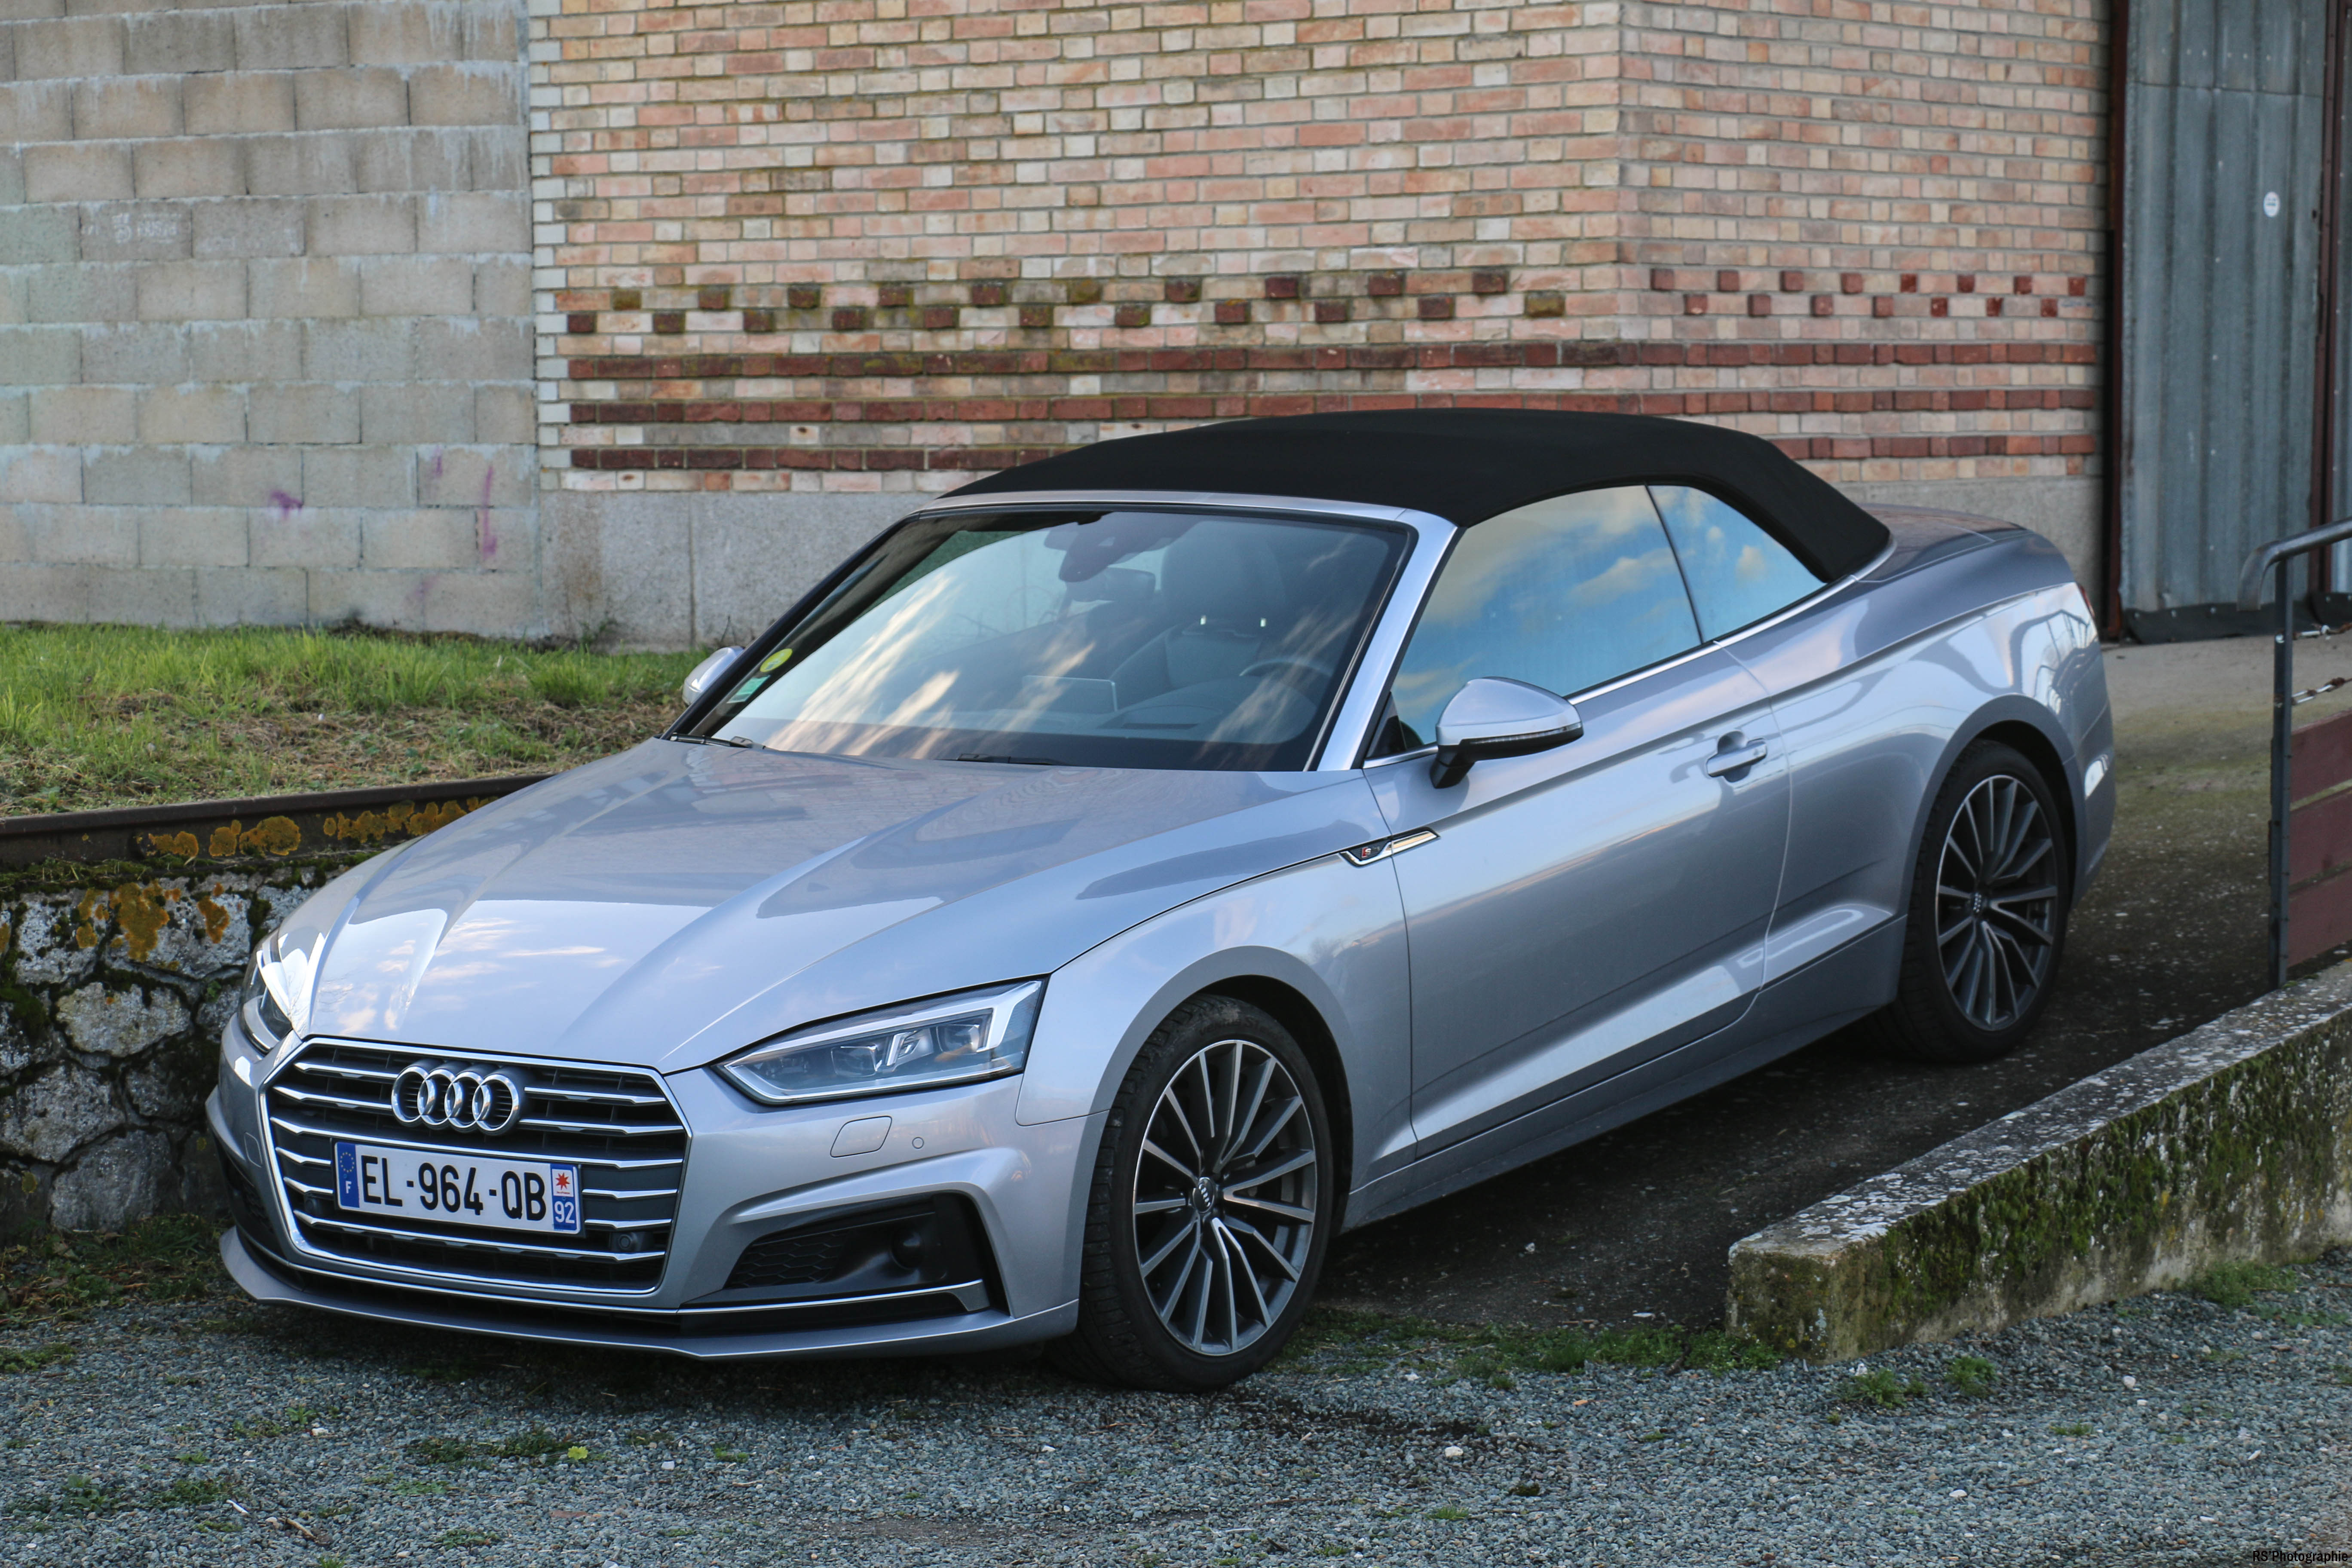 audia5cab38-audi-a5-190-tdi-cabriolet-profil-side-Arnaud Demasier-RSPhotographie